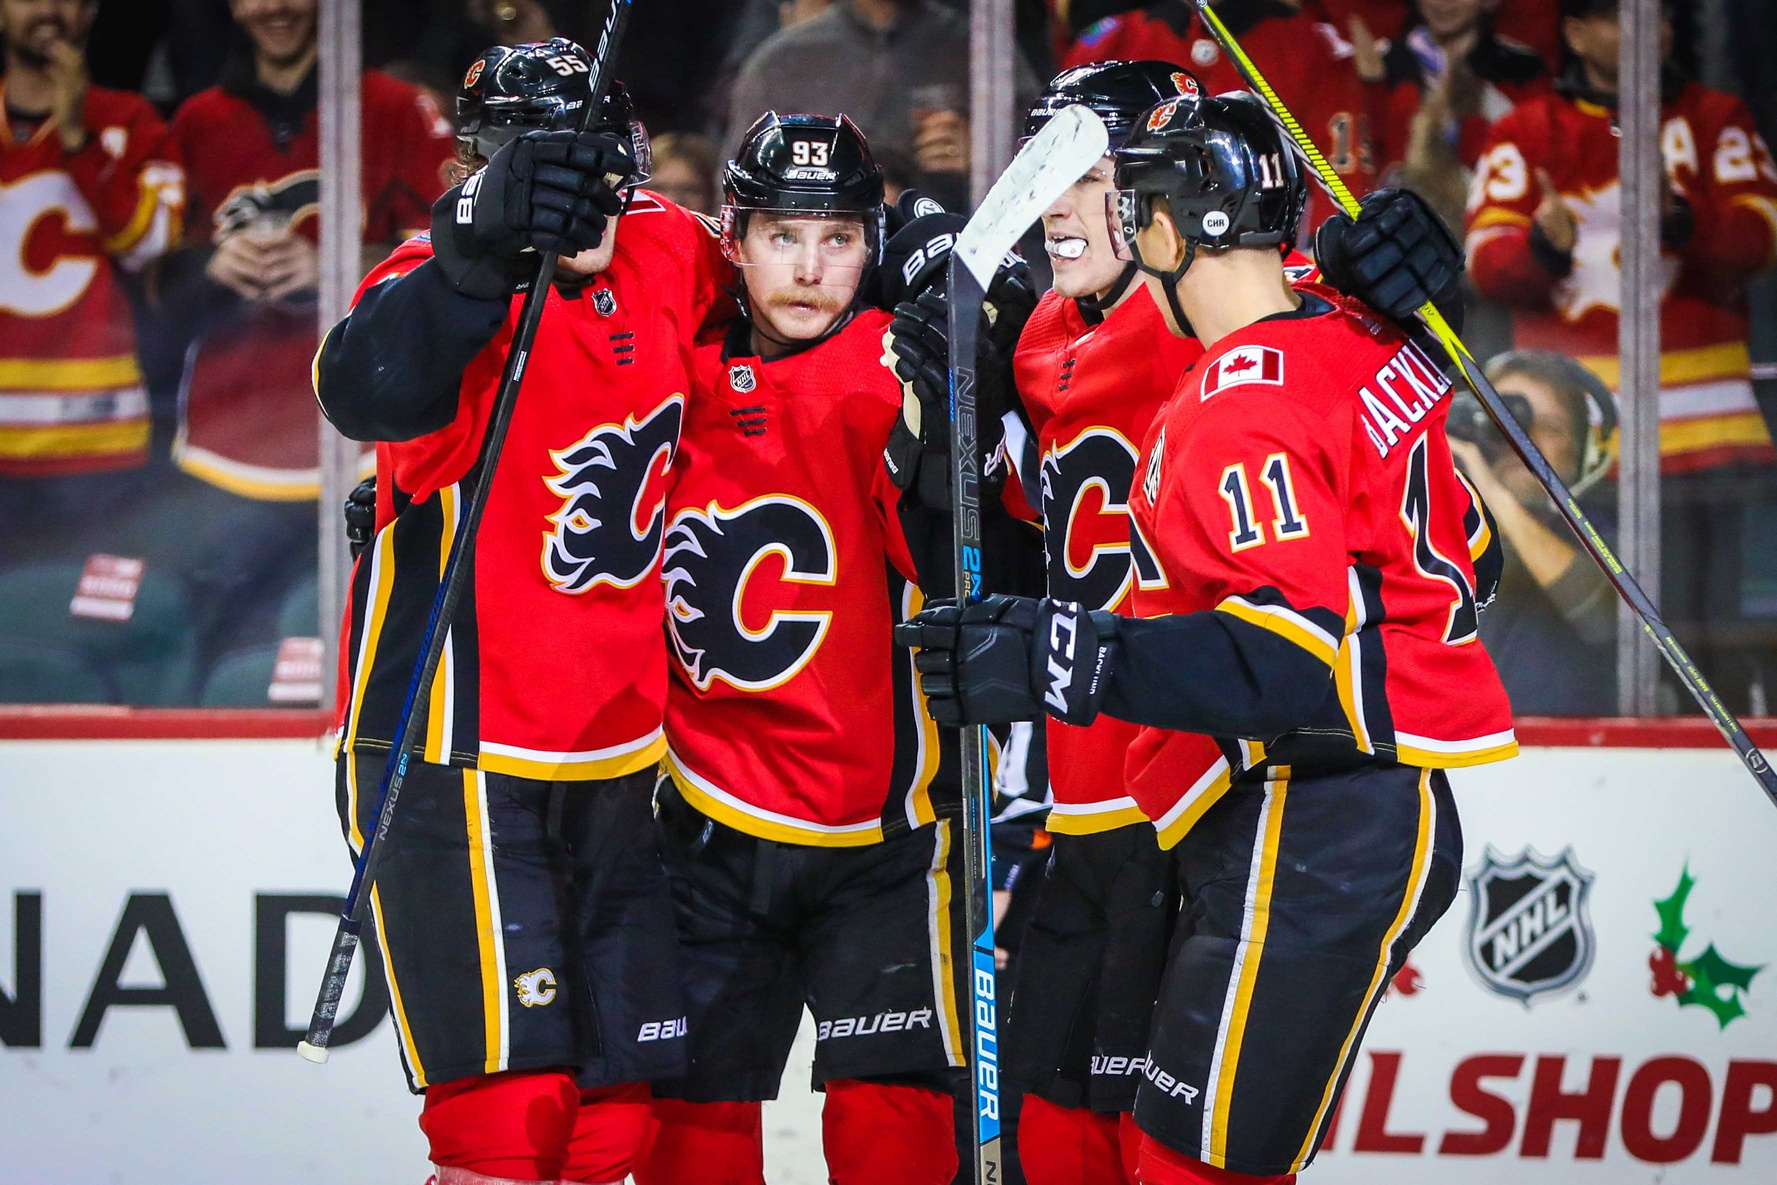 d5d277a6c The 2019 Playoff Chase  The chase begins – Flamesnation